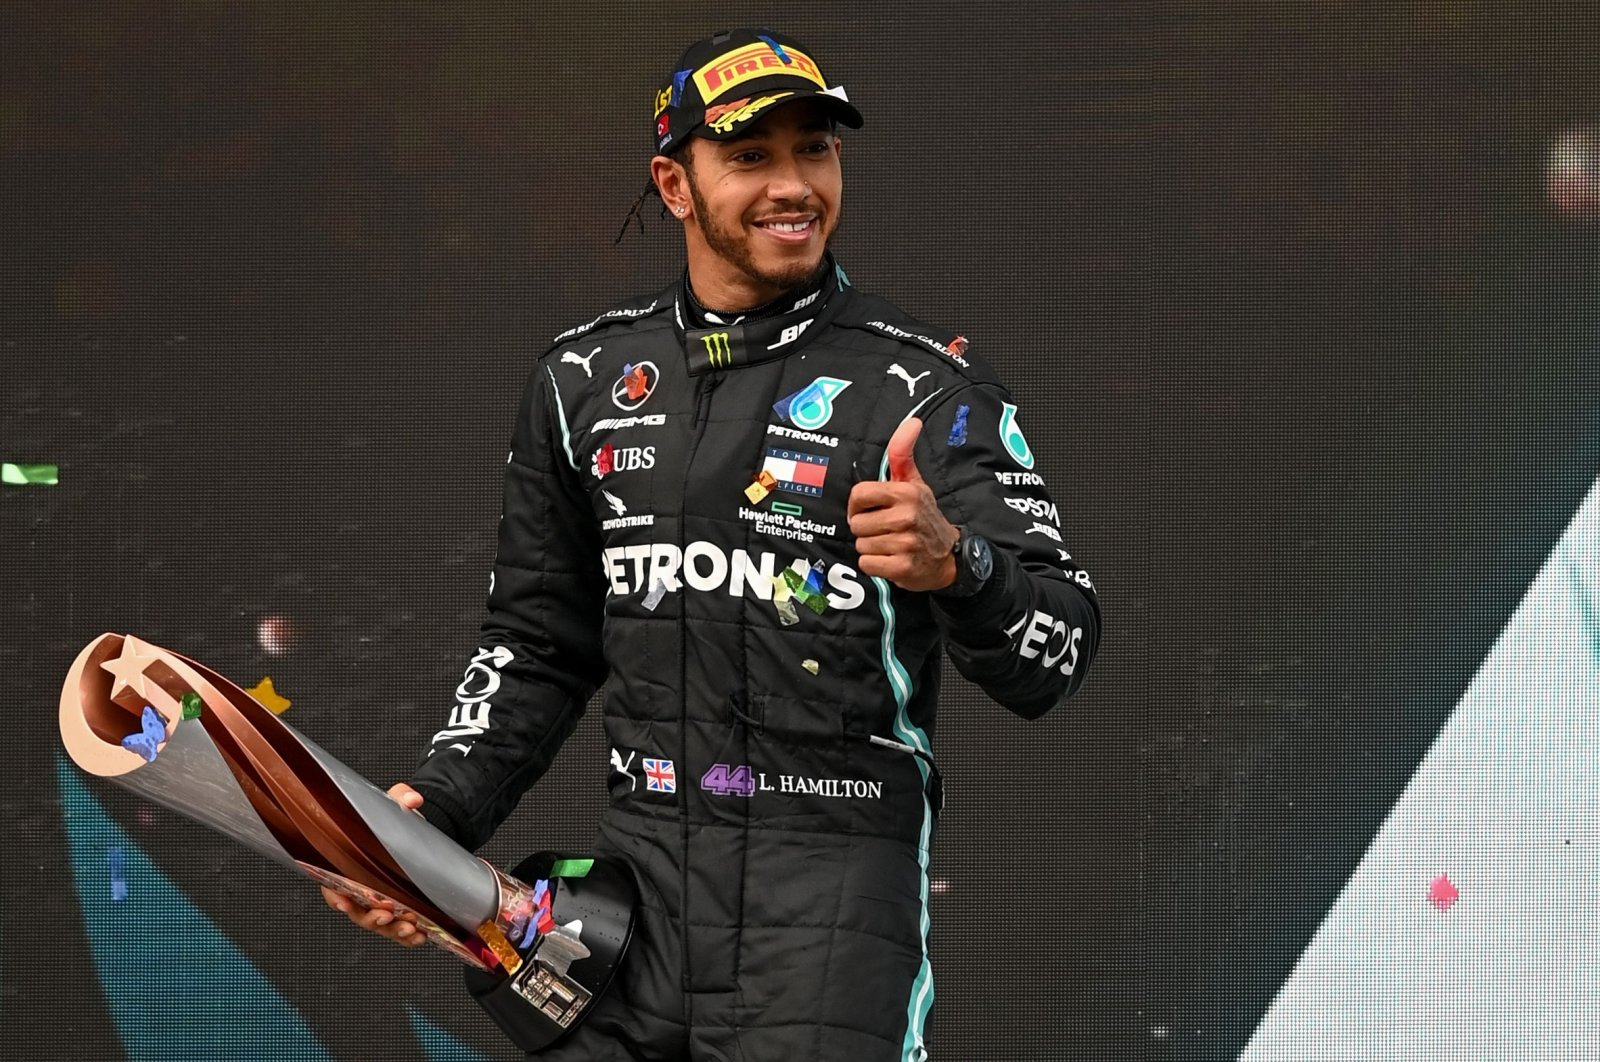 Mercedes driver Lewis Hamilton celebrates with his trophy after winning the Formula One Turkish Grand Prix in Istanbul, Turkey, Nov. 15, 2020. (AFP Photo)